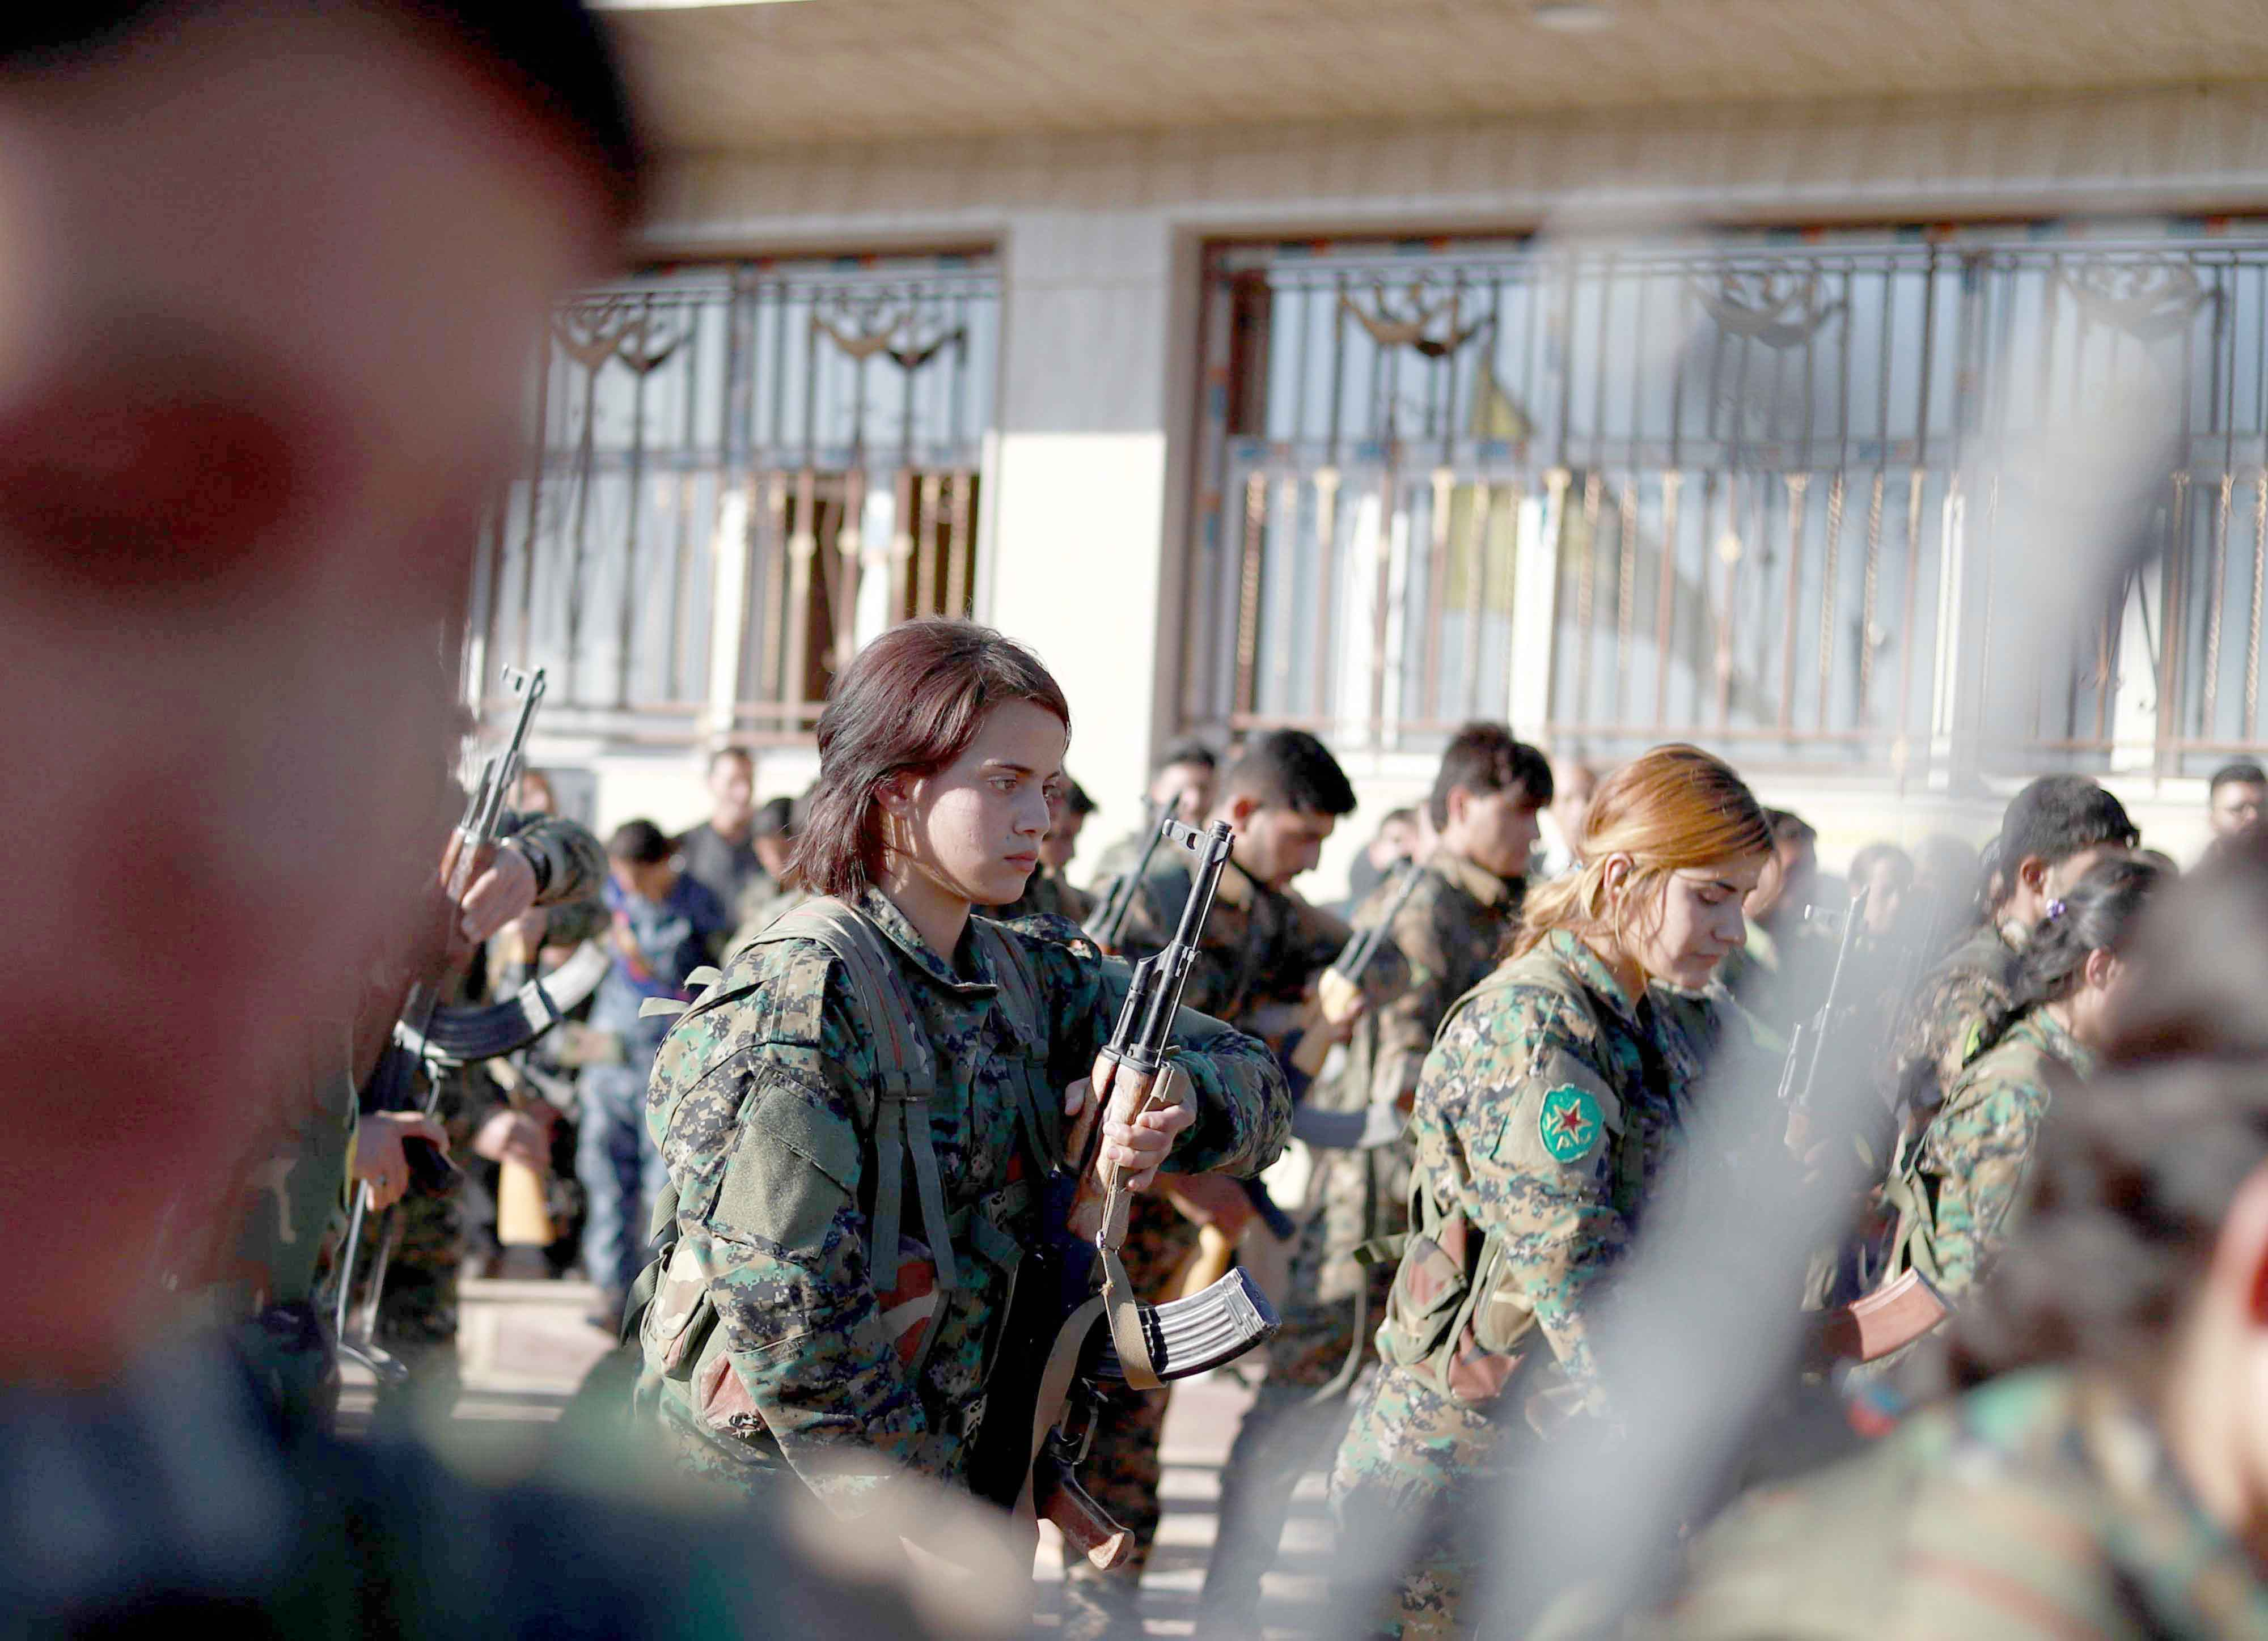 Fighters from the Syrian Democratic Forces attend the funeral of one of their commanders in the Kurdish-controlled city of Qamishly, on October 29. (AFP)